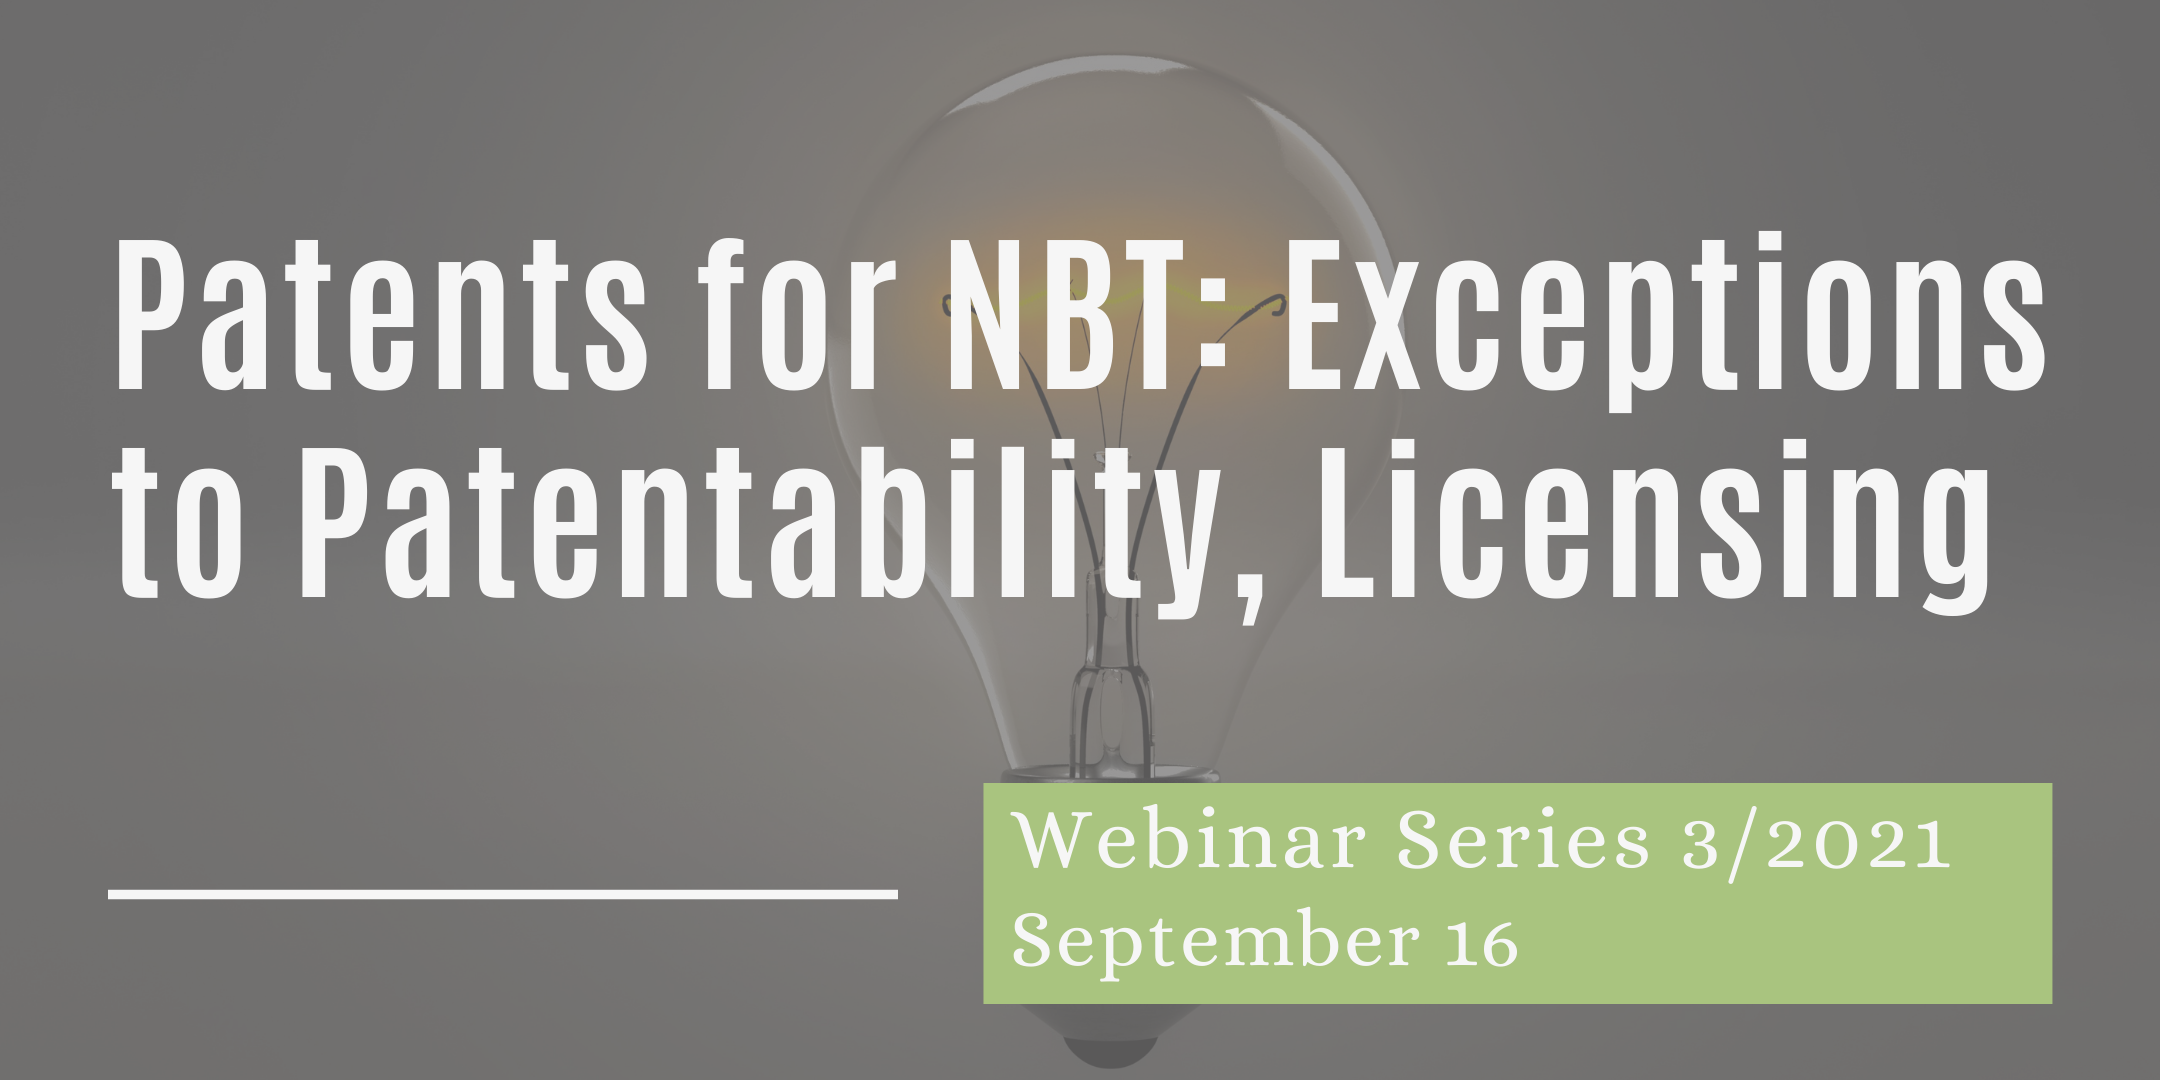 16/9/21 – Webinar 2. Patents for New Breeding Techniques: Exceptions to Patentability, Licensing